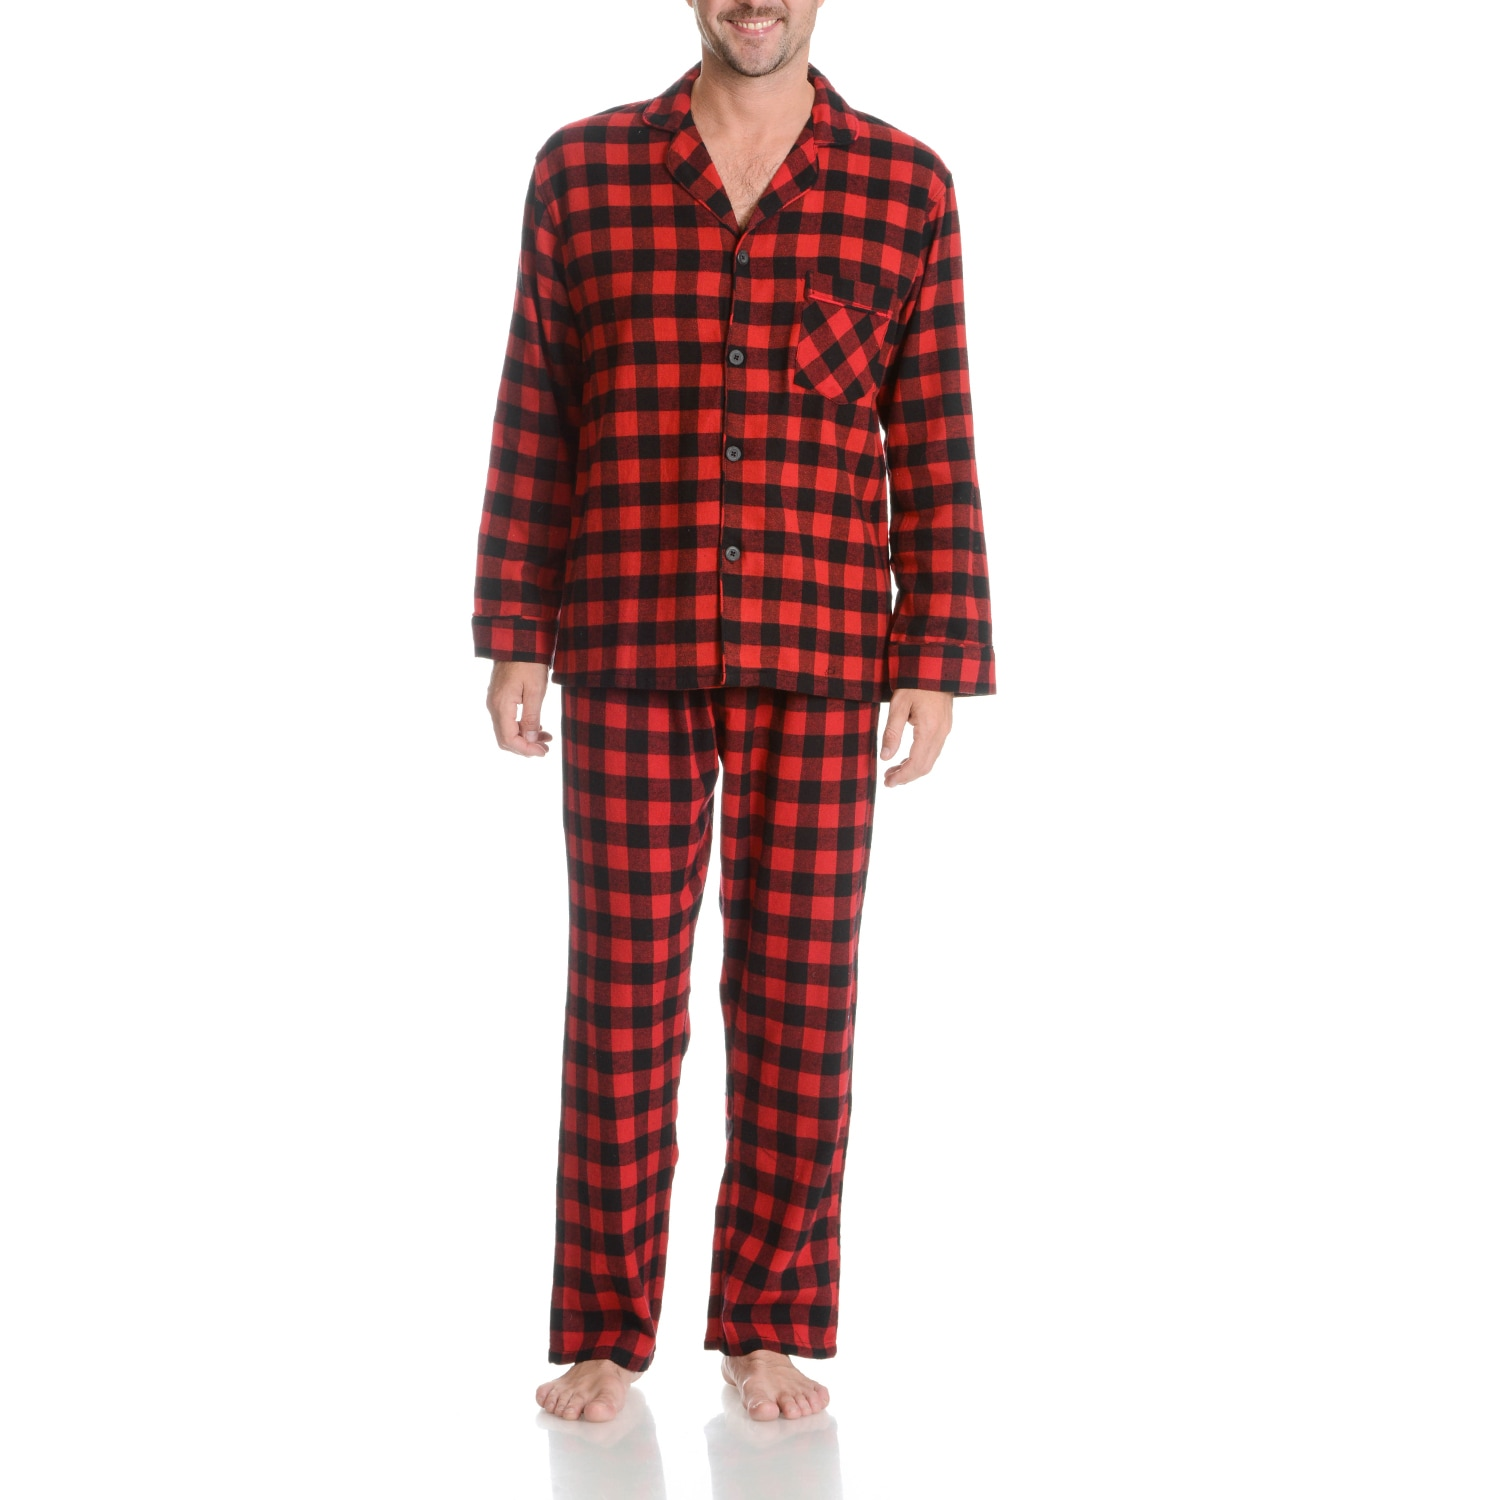 Hanes  Men's Red and Black Plaid Cotton 2-piece Woven Fla...